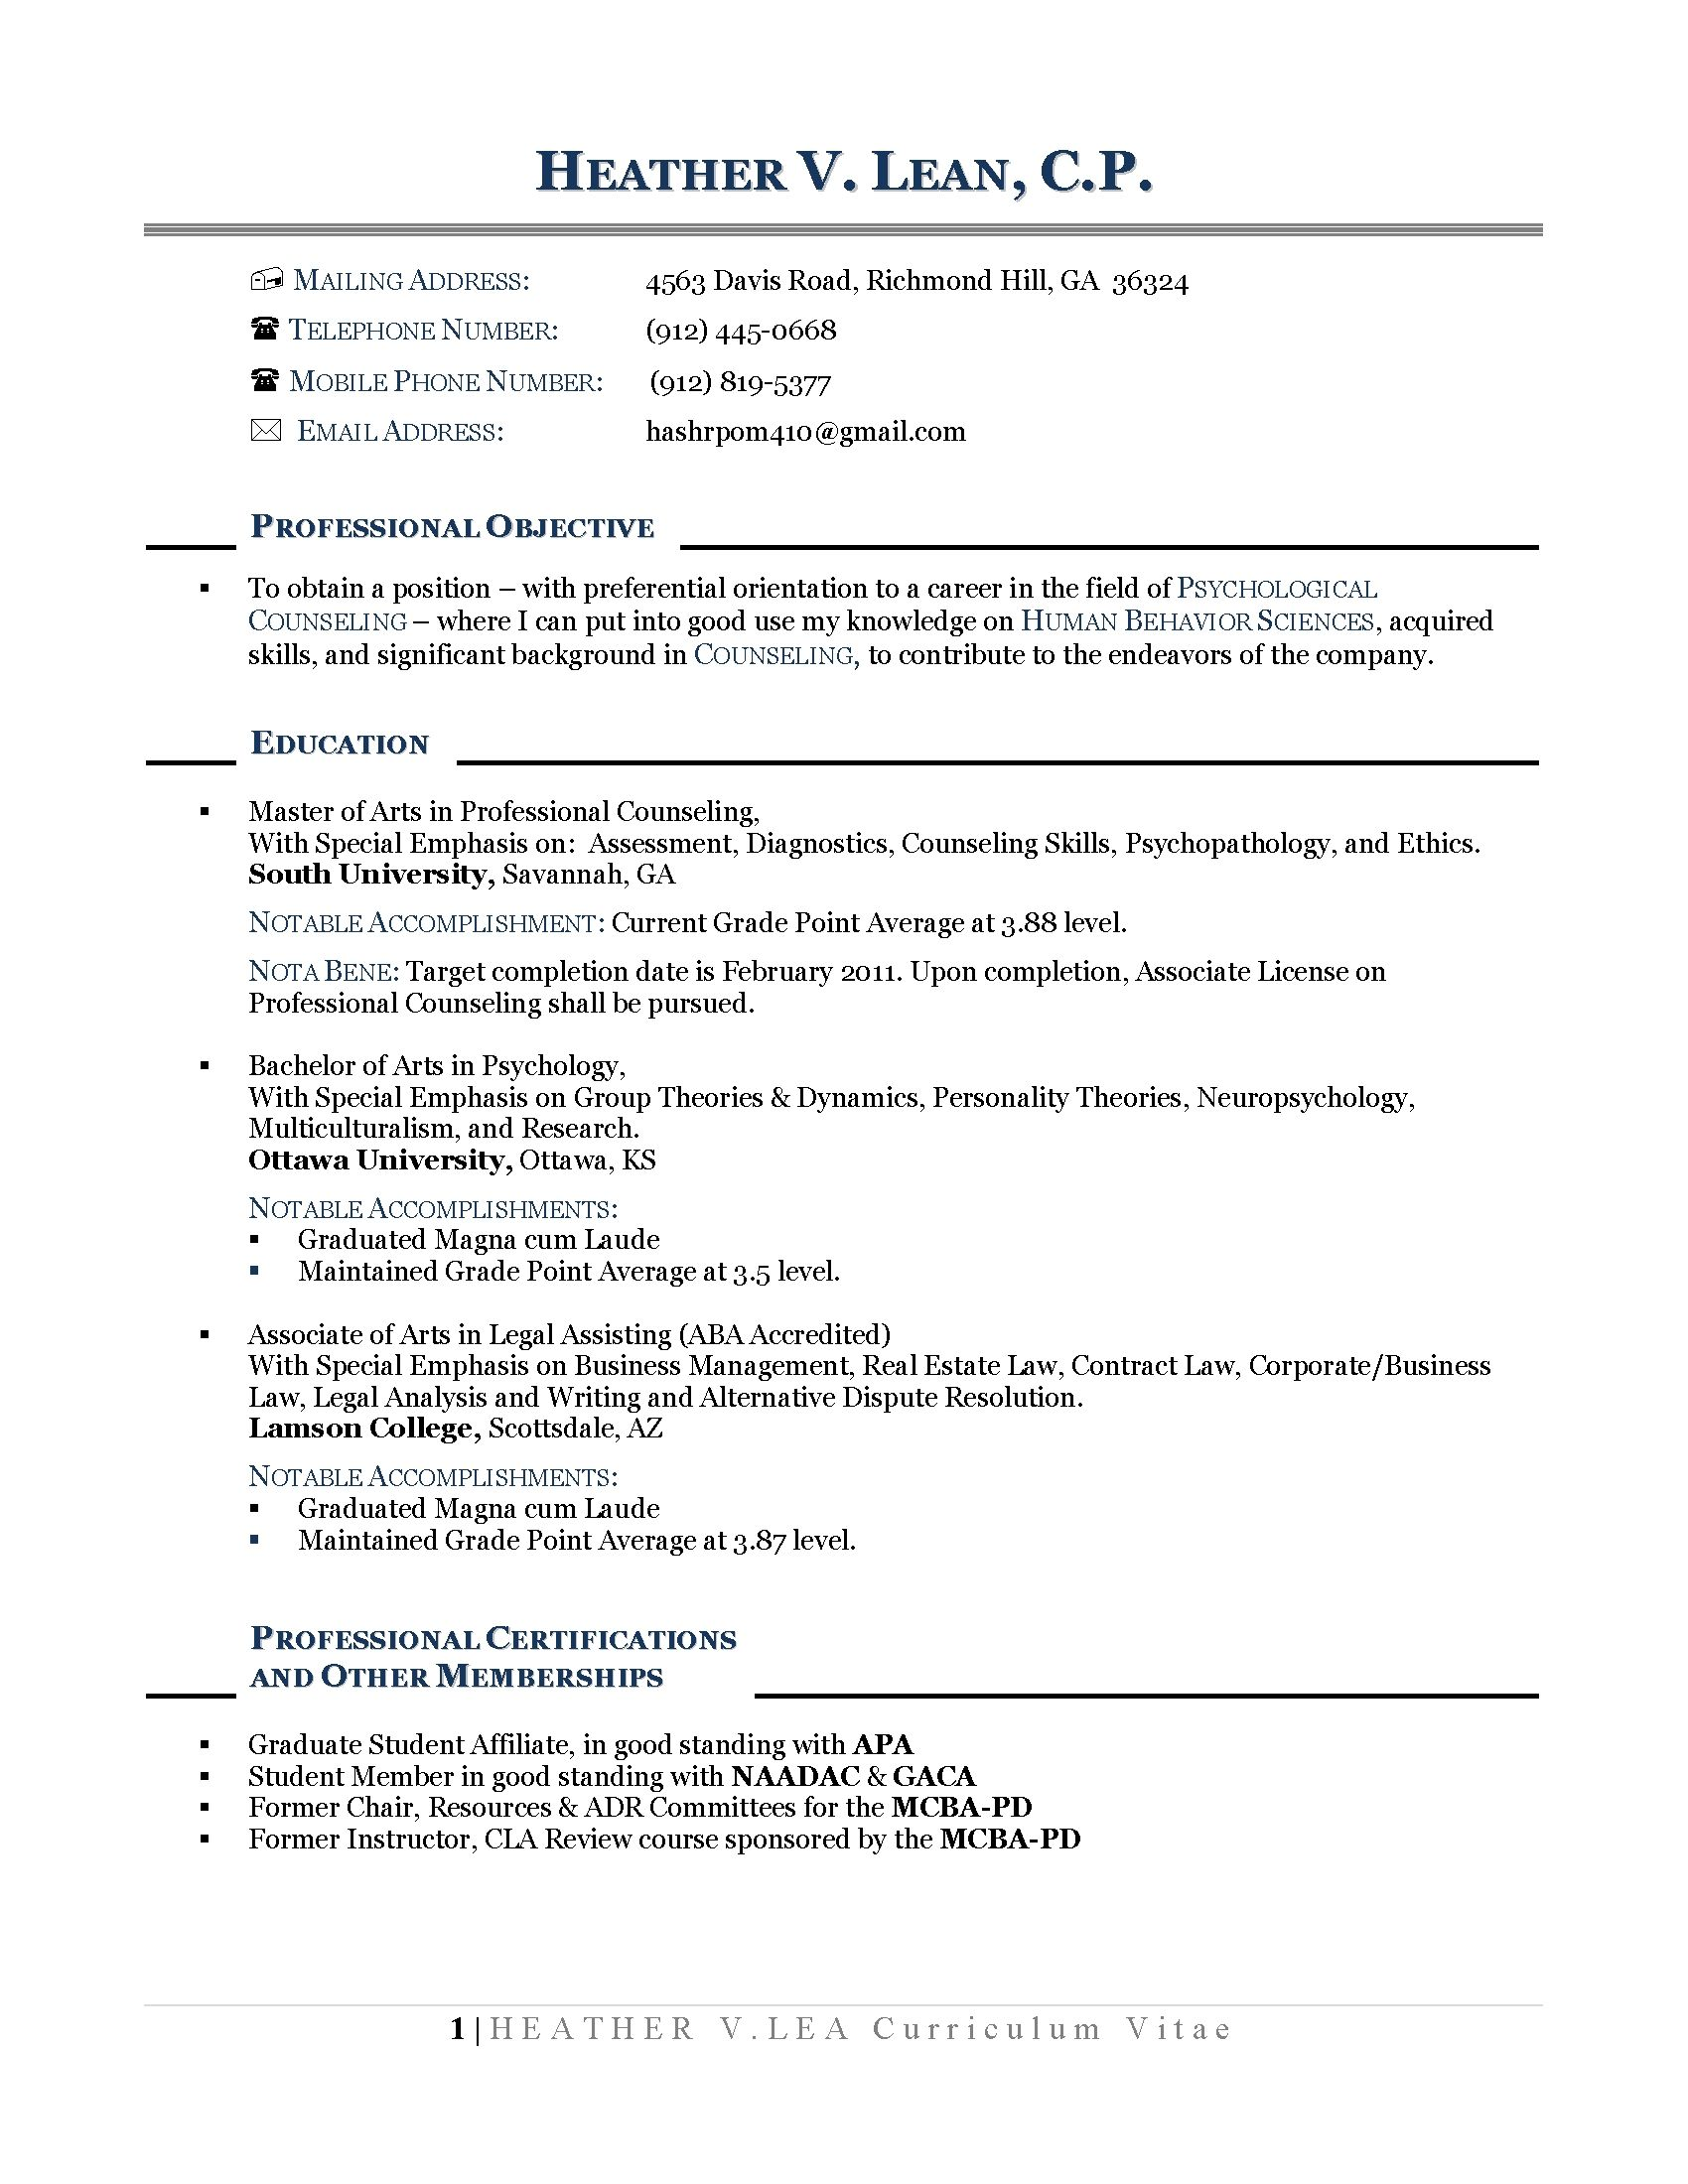 Associate Attorney Resume Awesome Resume Examples Career Change  Pinterest  Resume Examples And Change